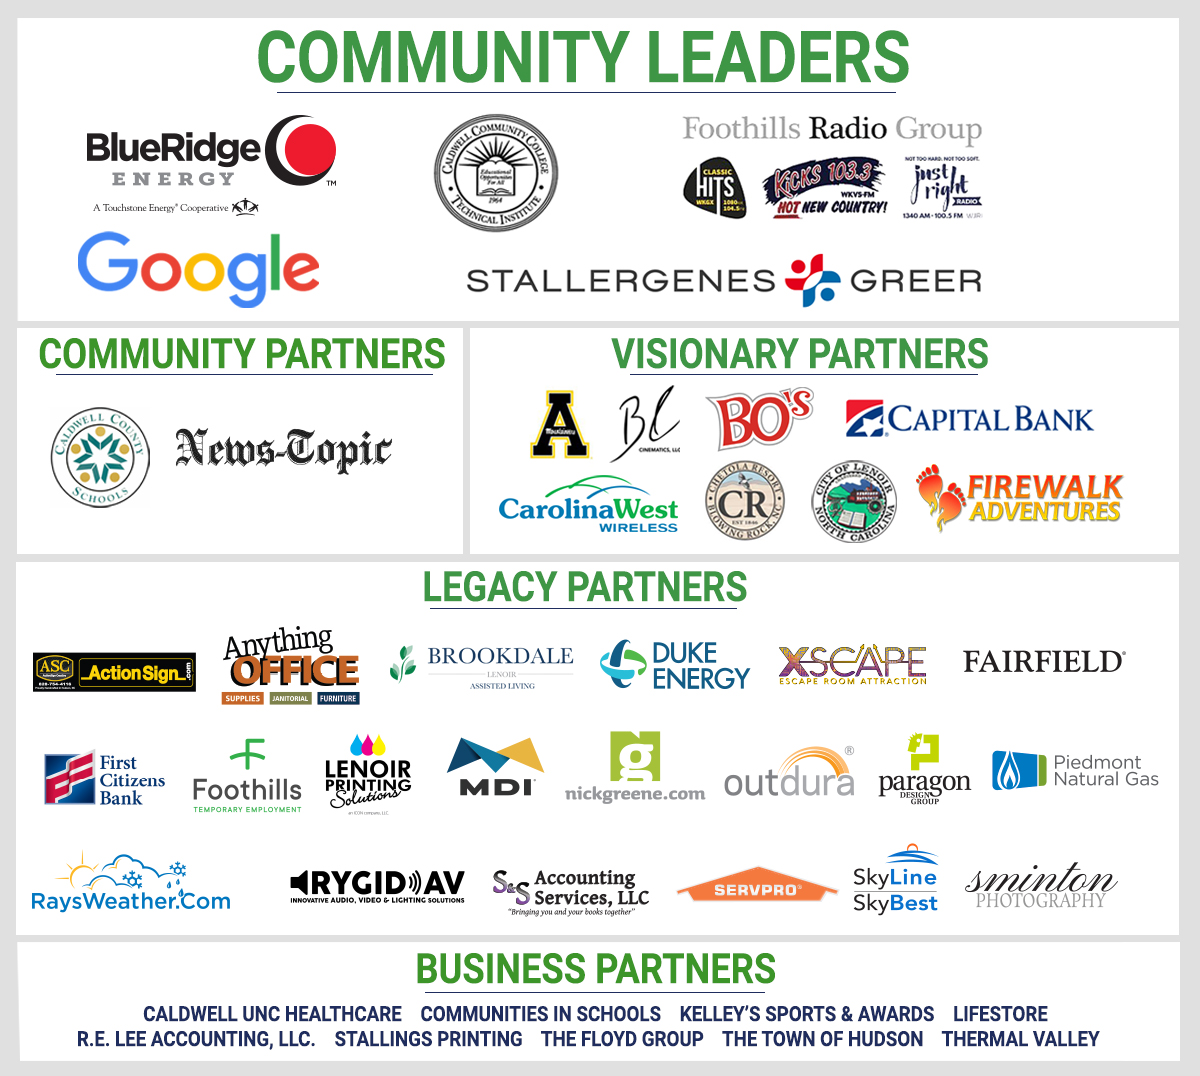 Caldwell County Maps, Caldwell Chamber Of Commerce 2019 Partners, Caldwell County Maps